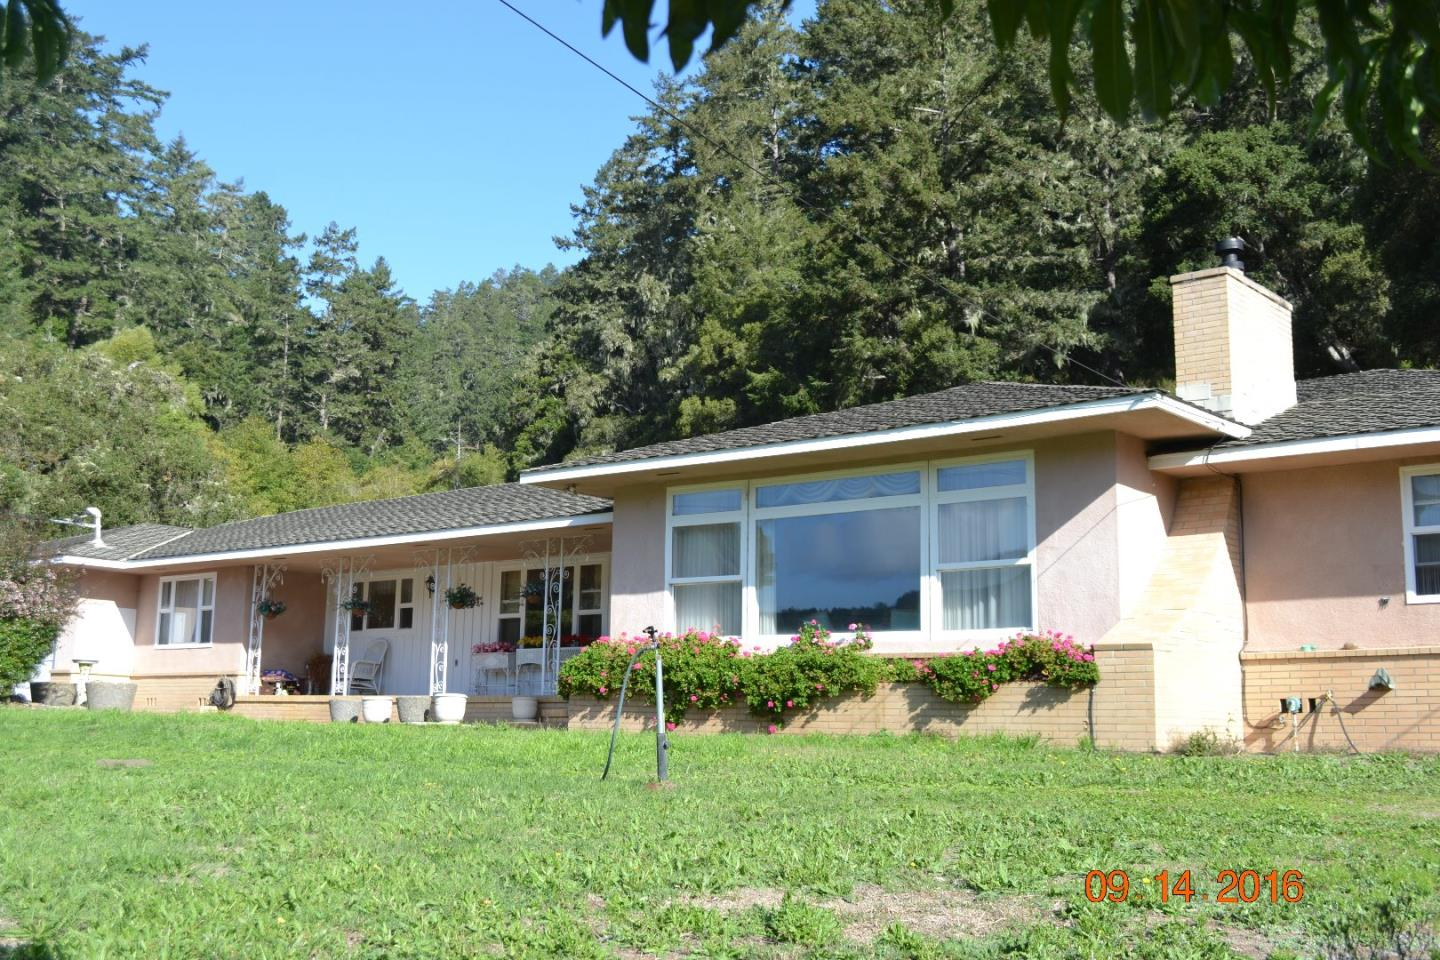 Single Family Home for Sale at 4931 Pescadero Creek Road 4931 Pescadero Creek Road Pescadero, California 94060 United States